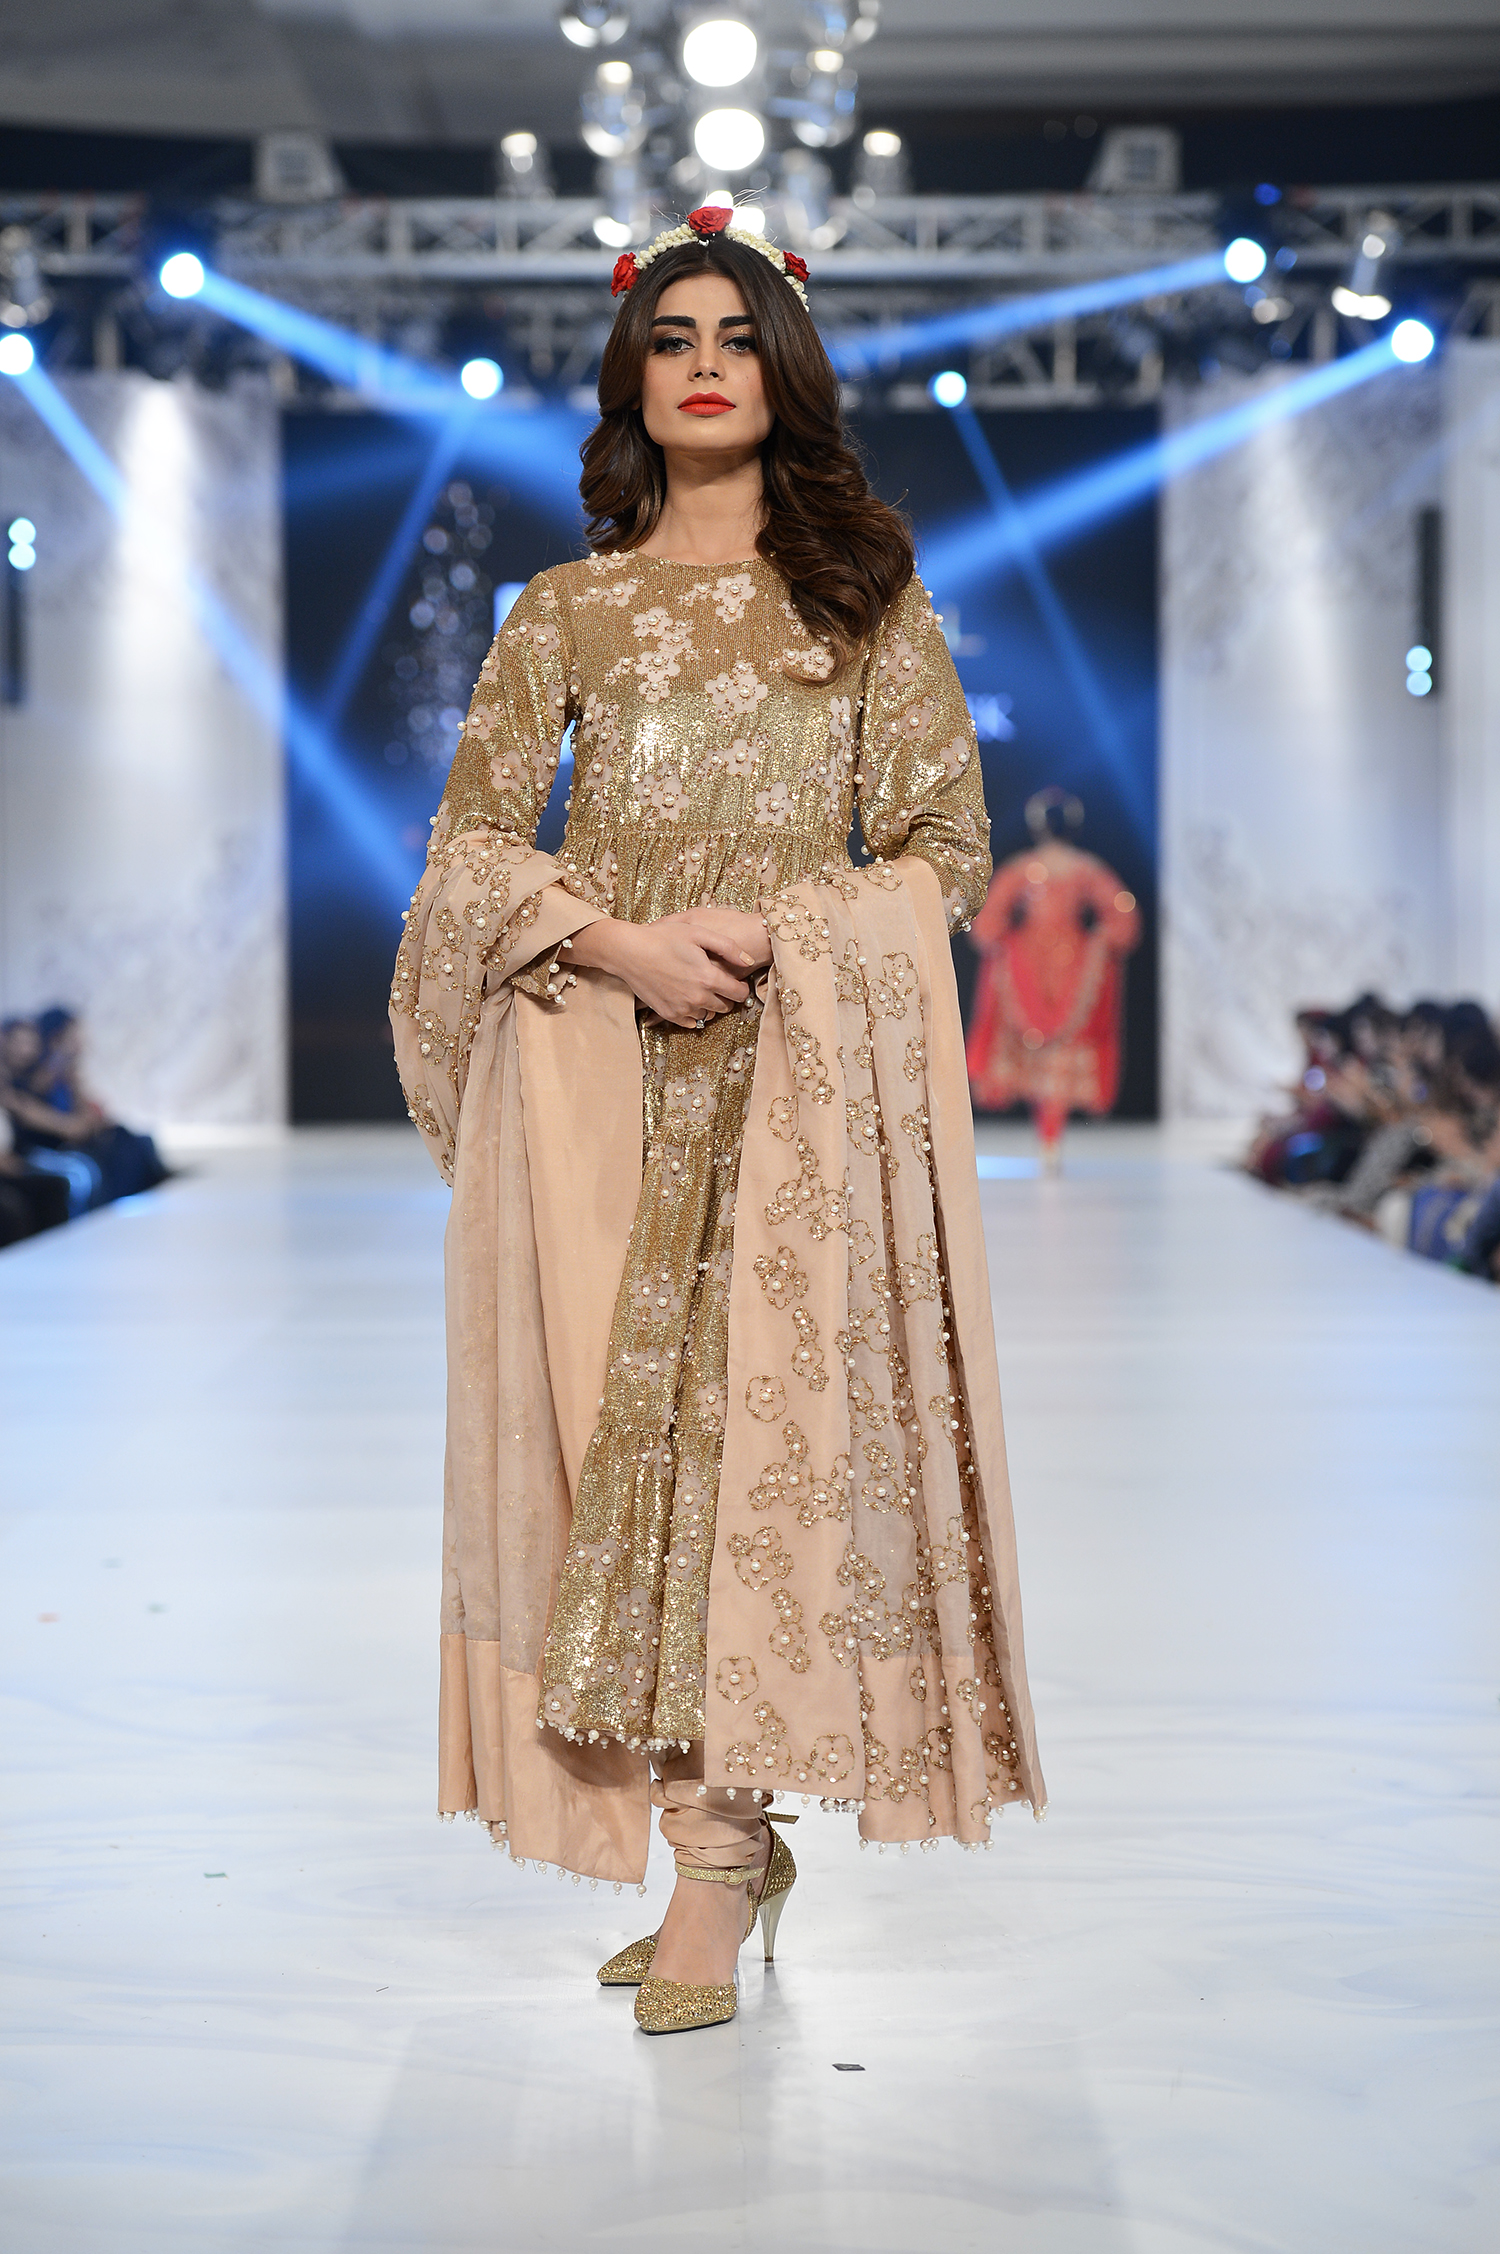 MUSE - PFDC L'Oréal Paris Bridal Week - Photography by Faisal Farooqui, Dragonfly